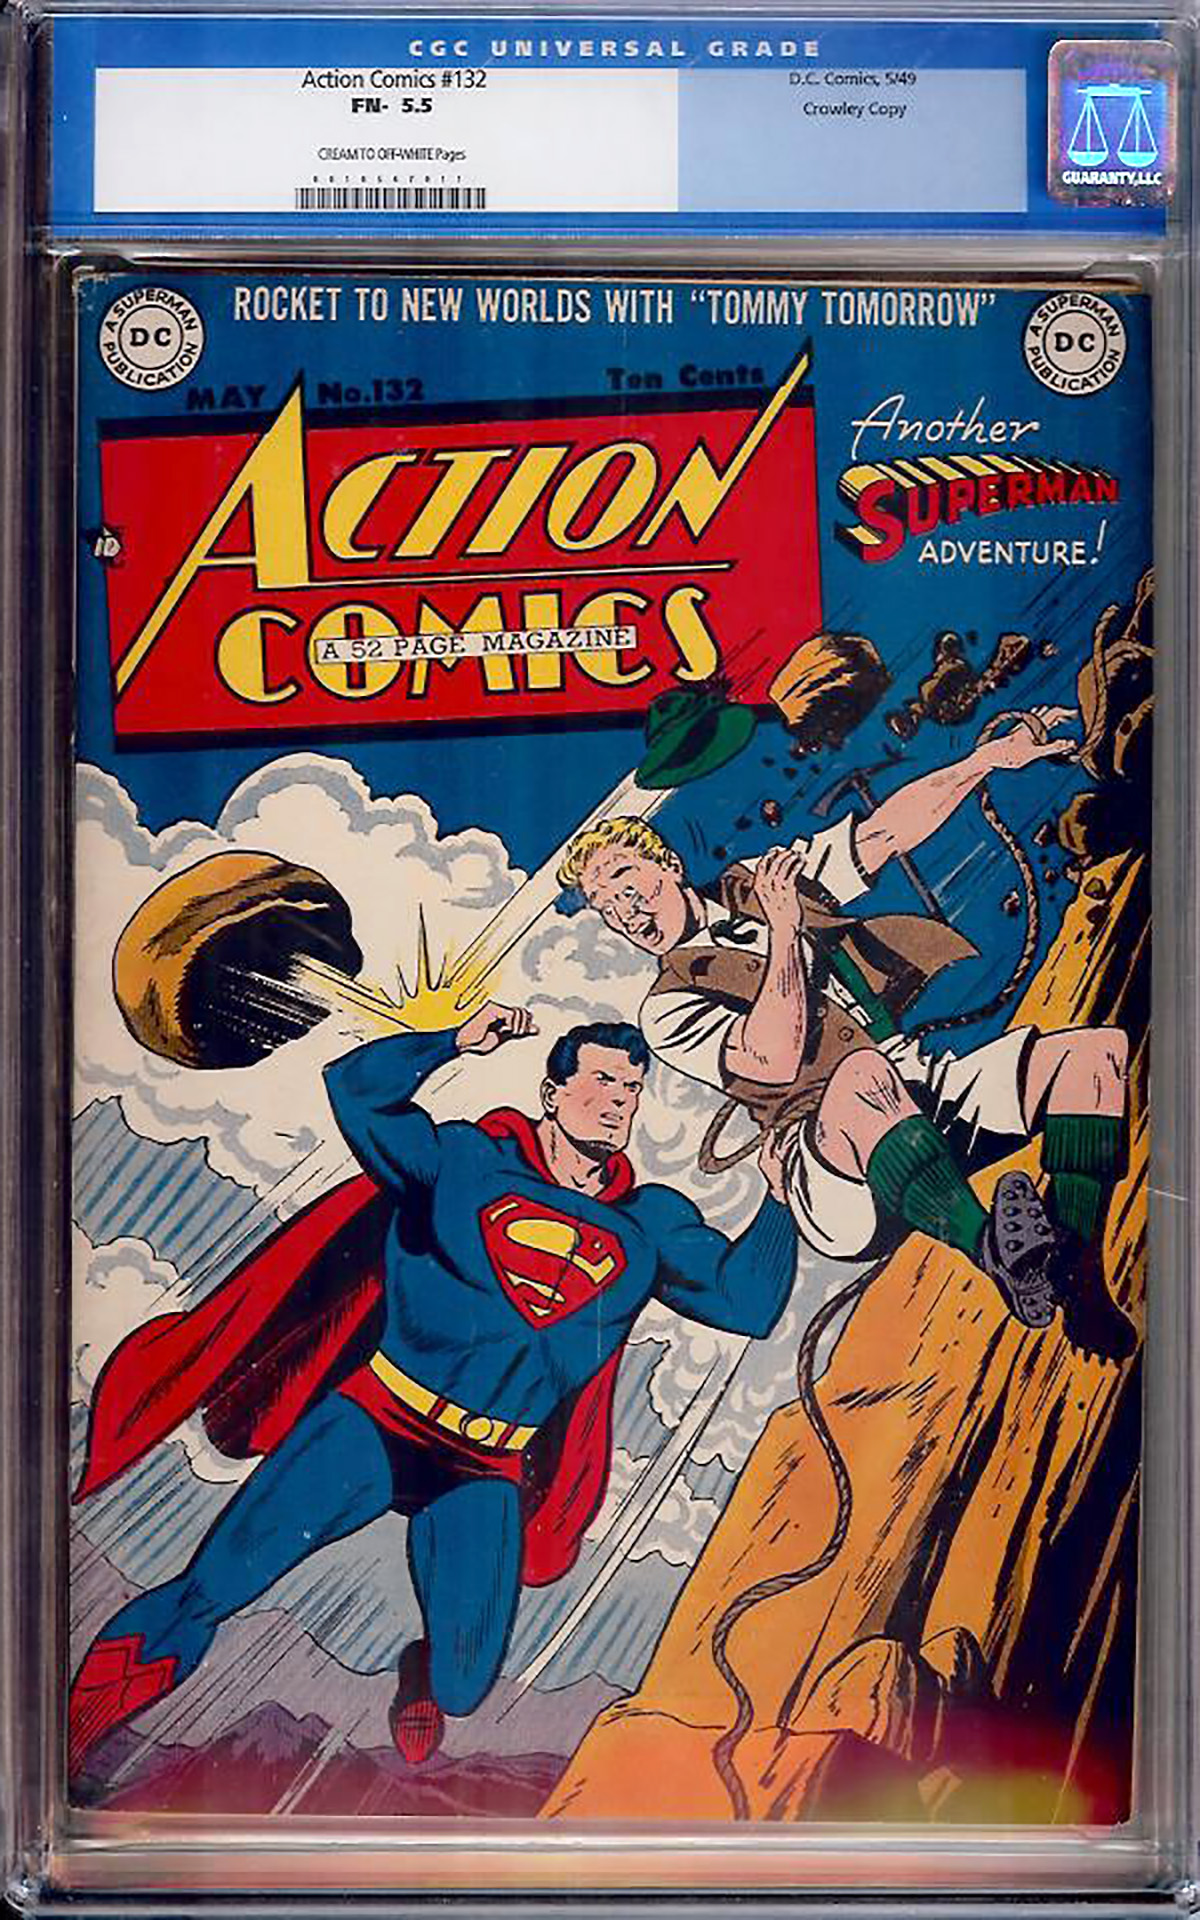 Action Comics #132 CGC 5.5 cr/ow Crowley Copy